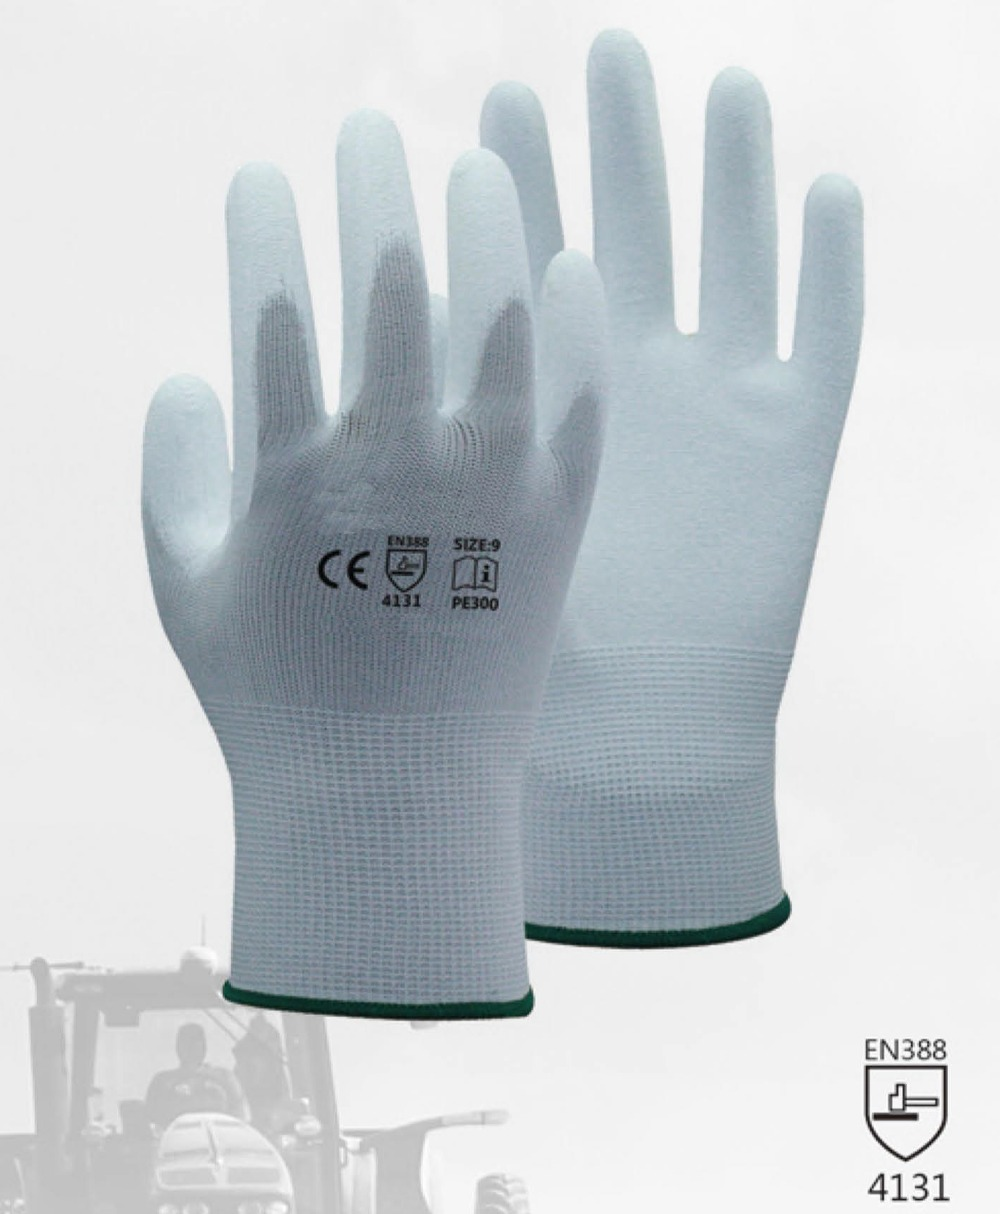 5 Pairs ESD Safety Glove Anti-static Glove Nylon Glove With PU Polyurethane Palm Dipped Anti Static Work Glove